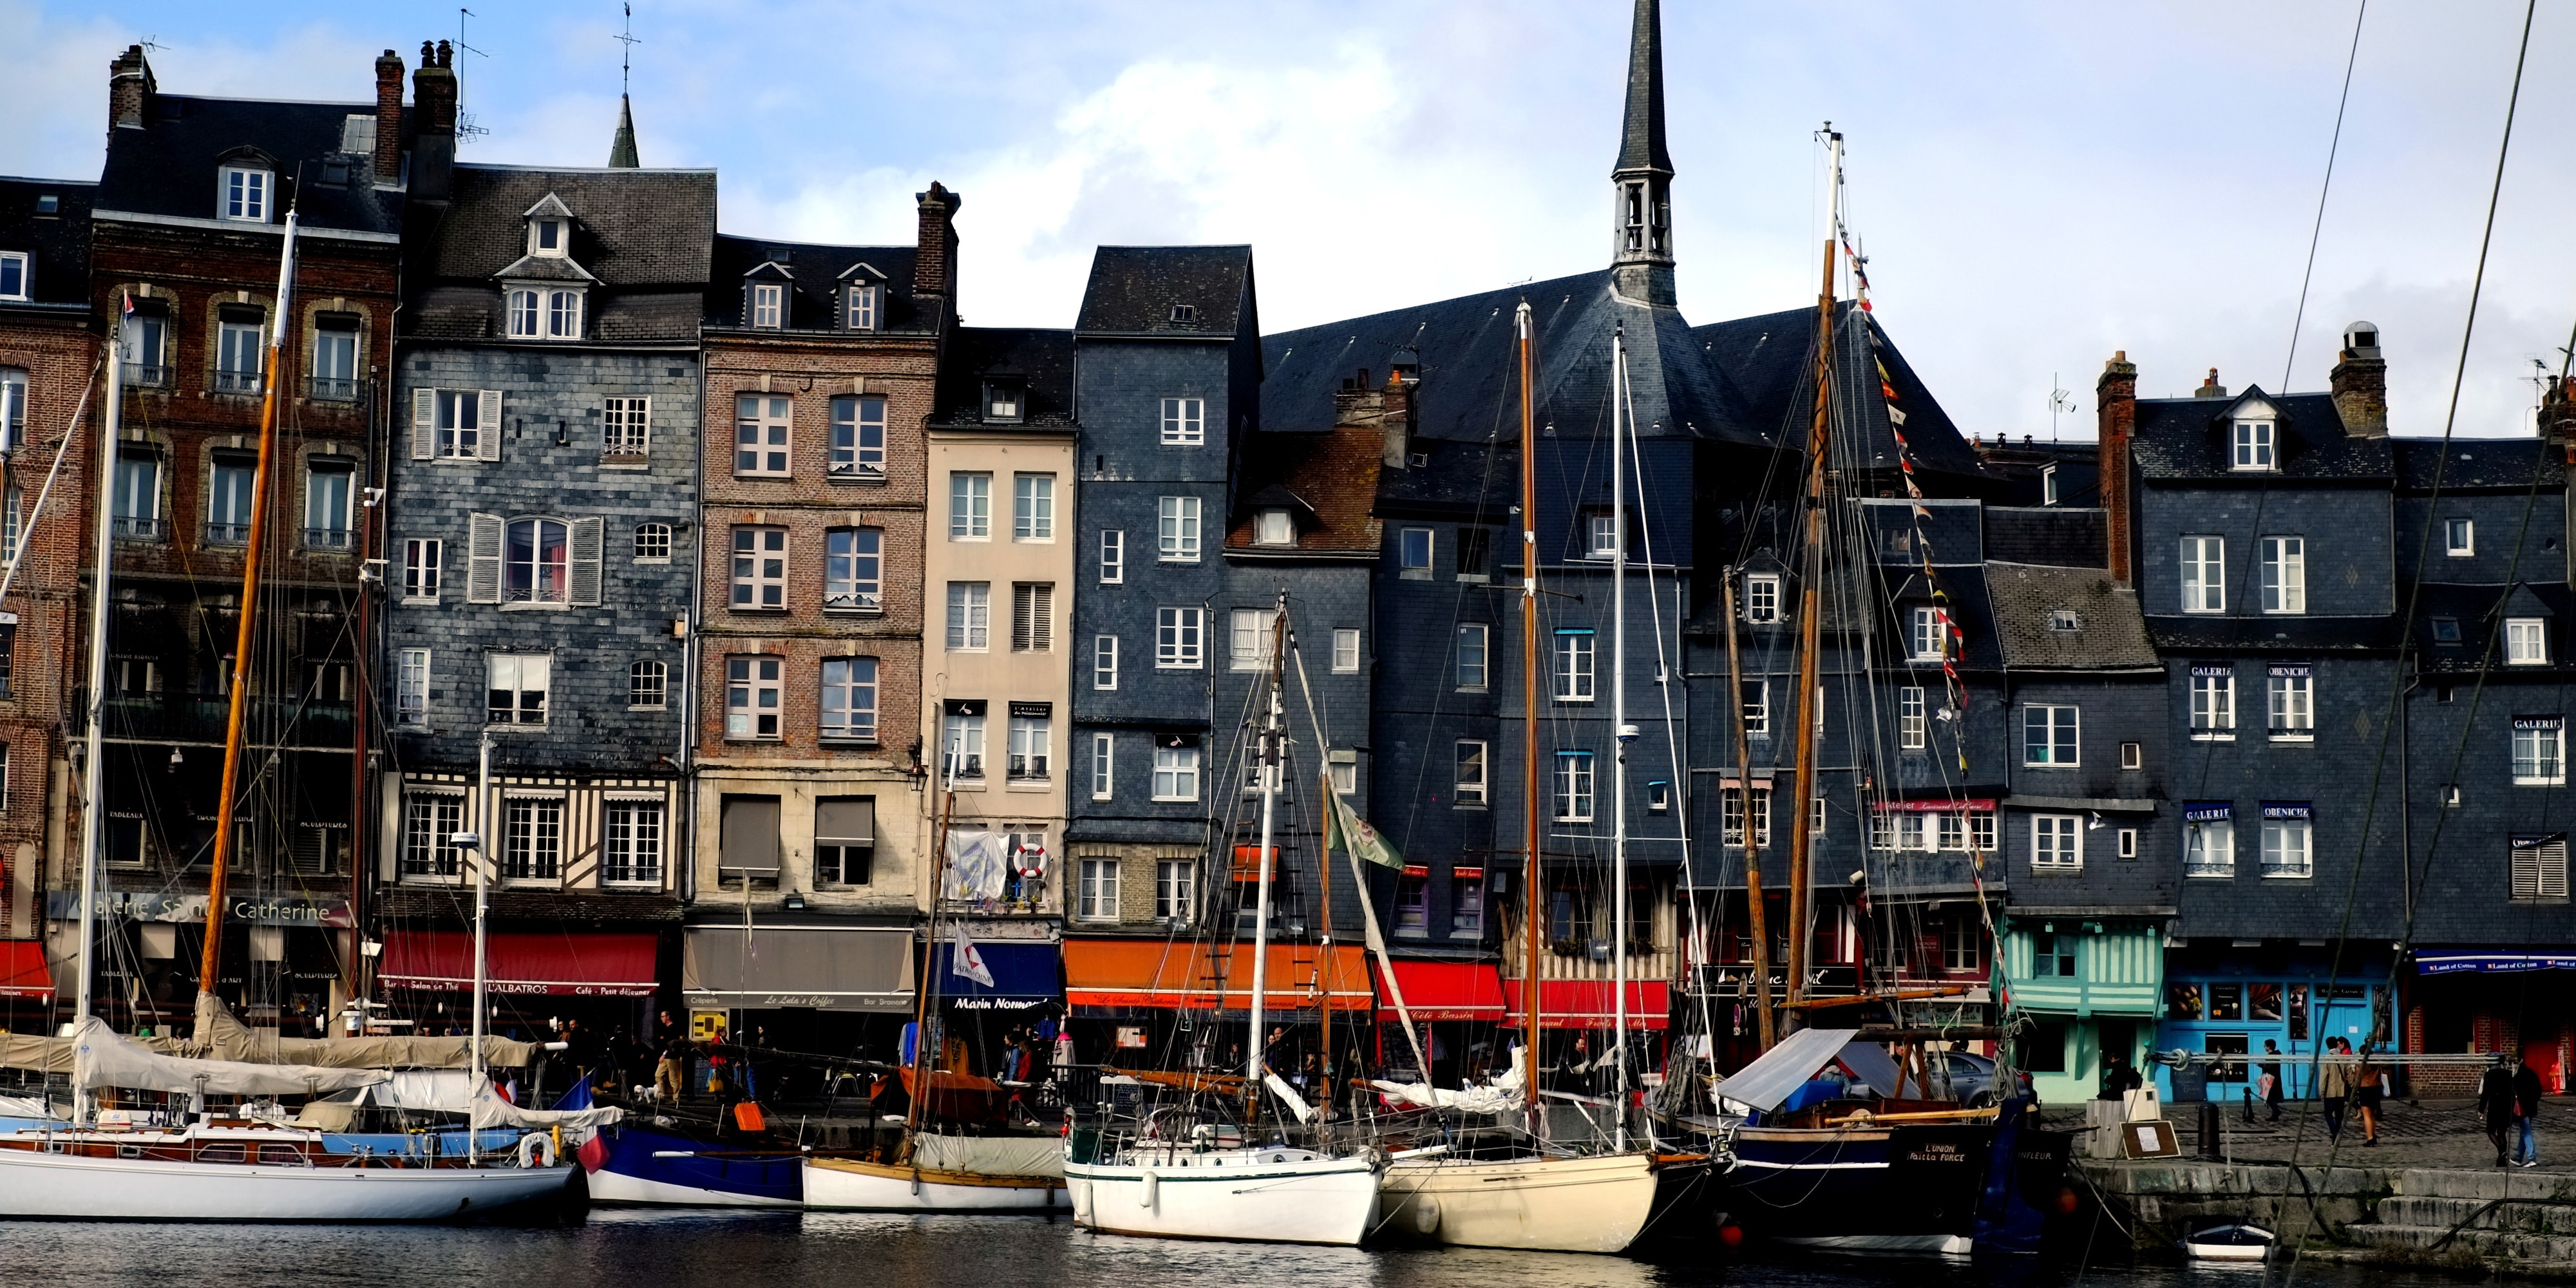 Boats anchored in the harbor of the coastal town of Honfleur